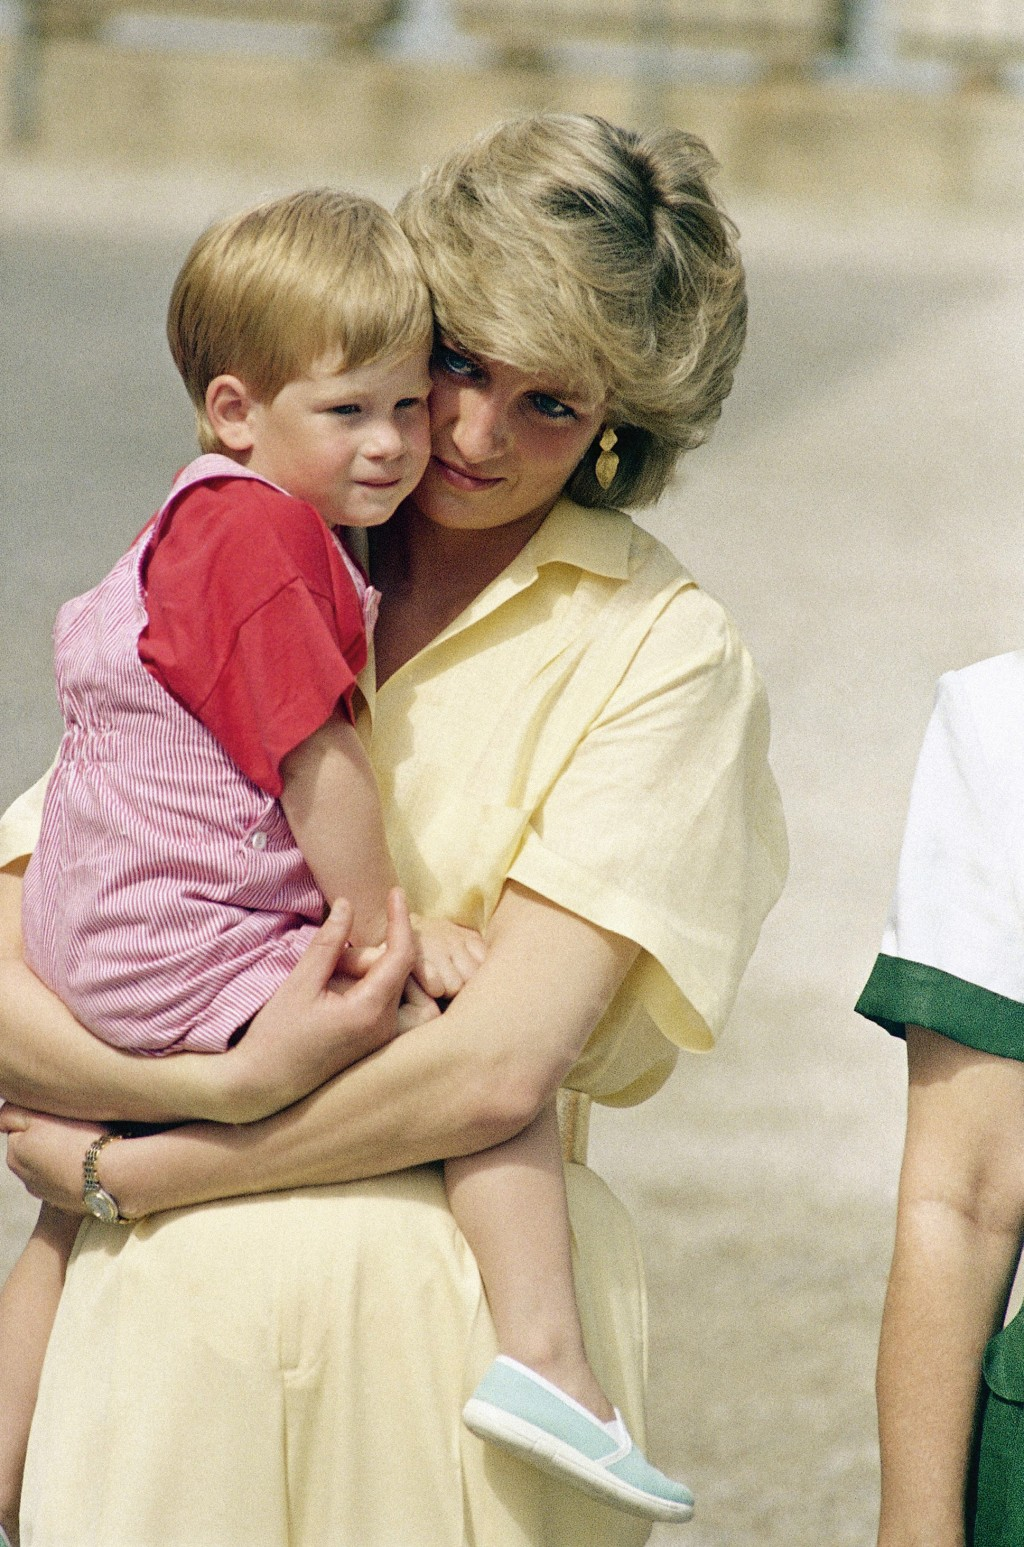 FILE - In this Sunday, Aug. 9, 1987 file photo, Diana, the Princess of Wales holds son Prince Harry while royal families posed for photographers at th...